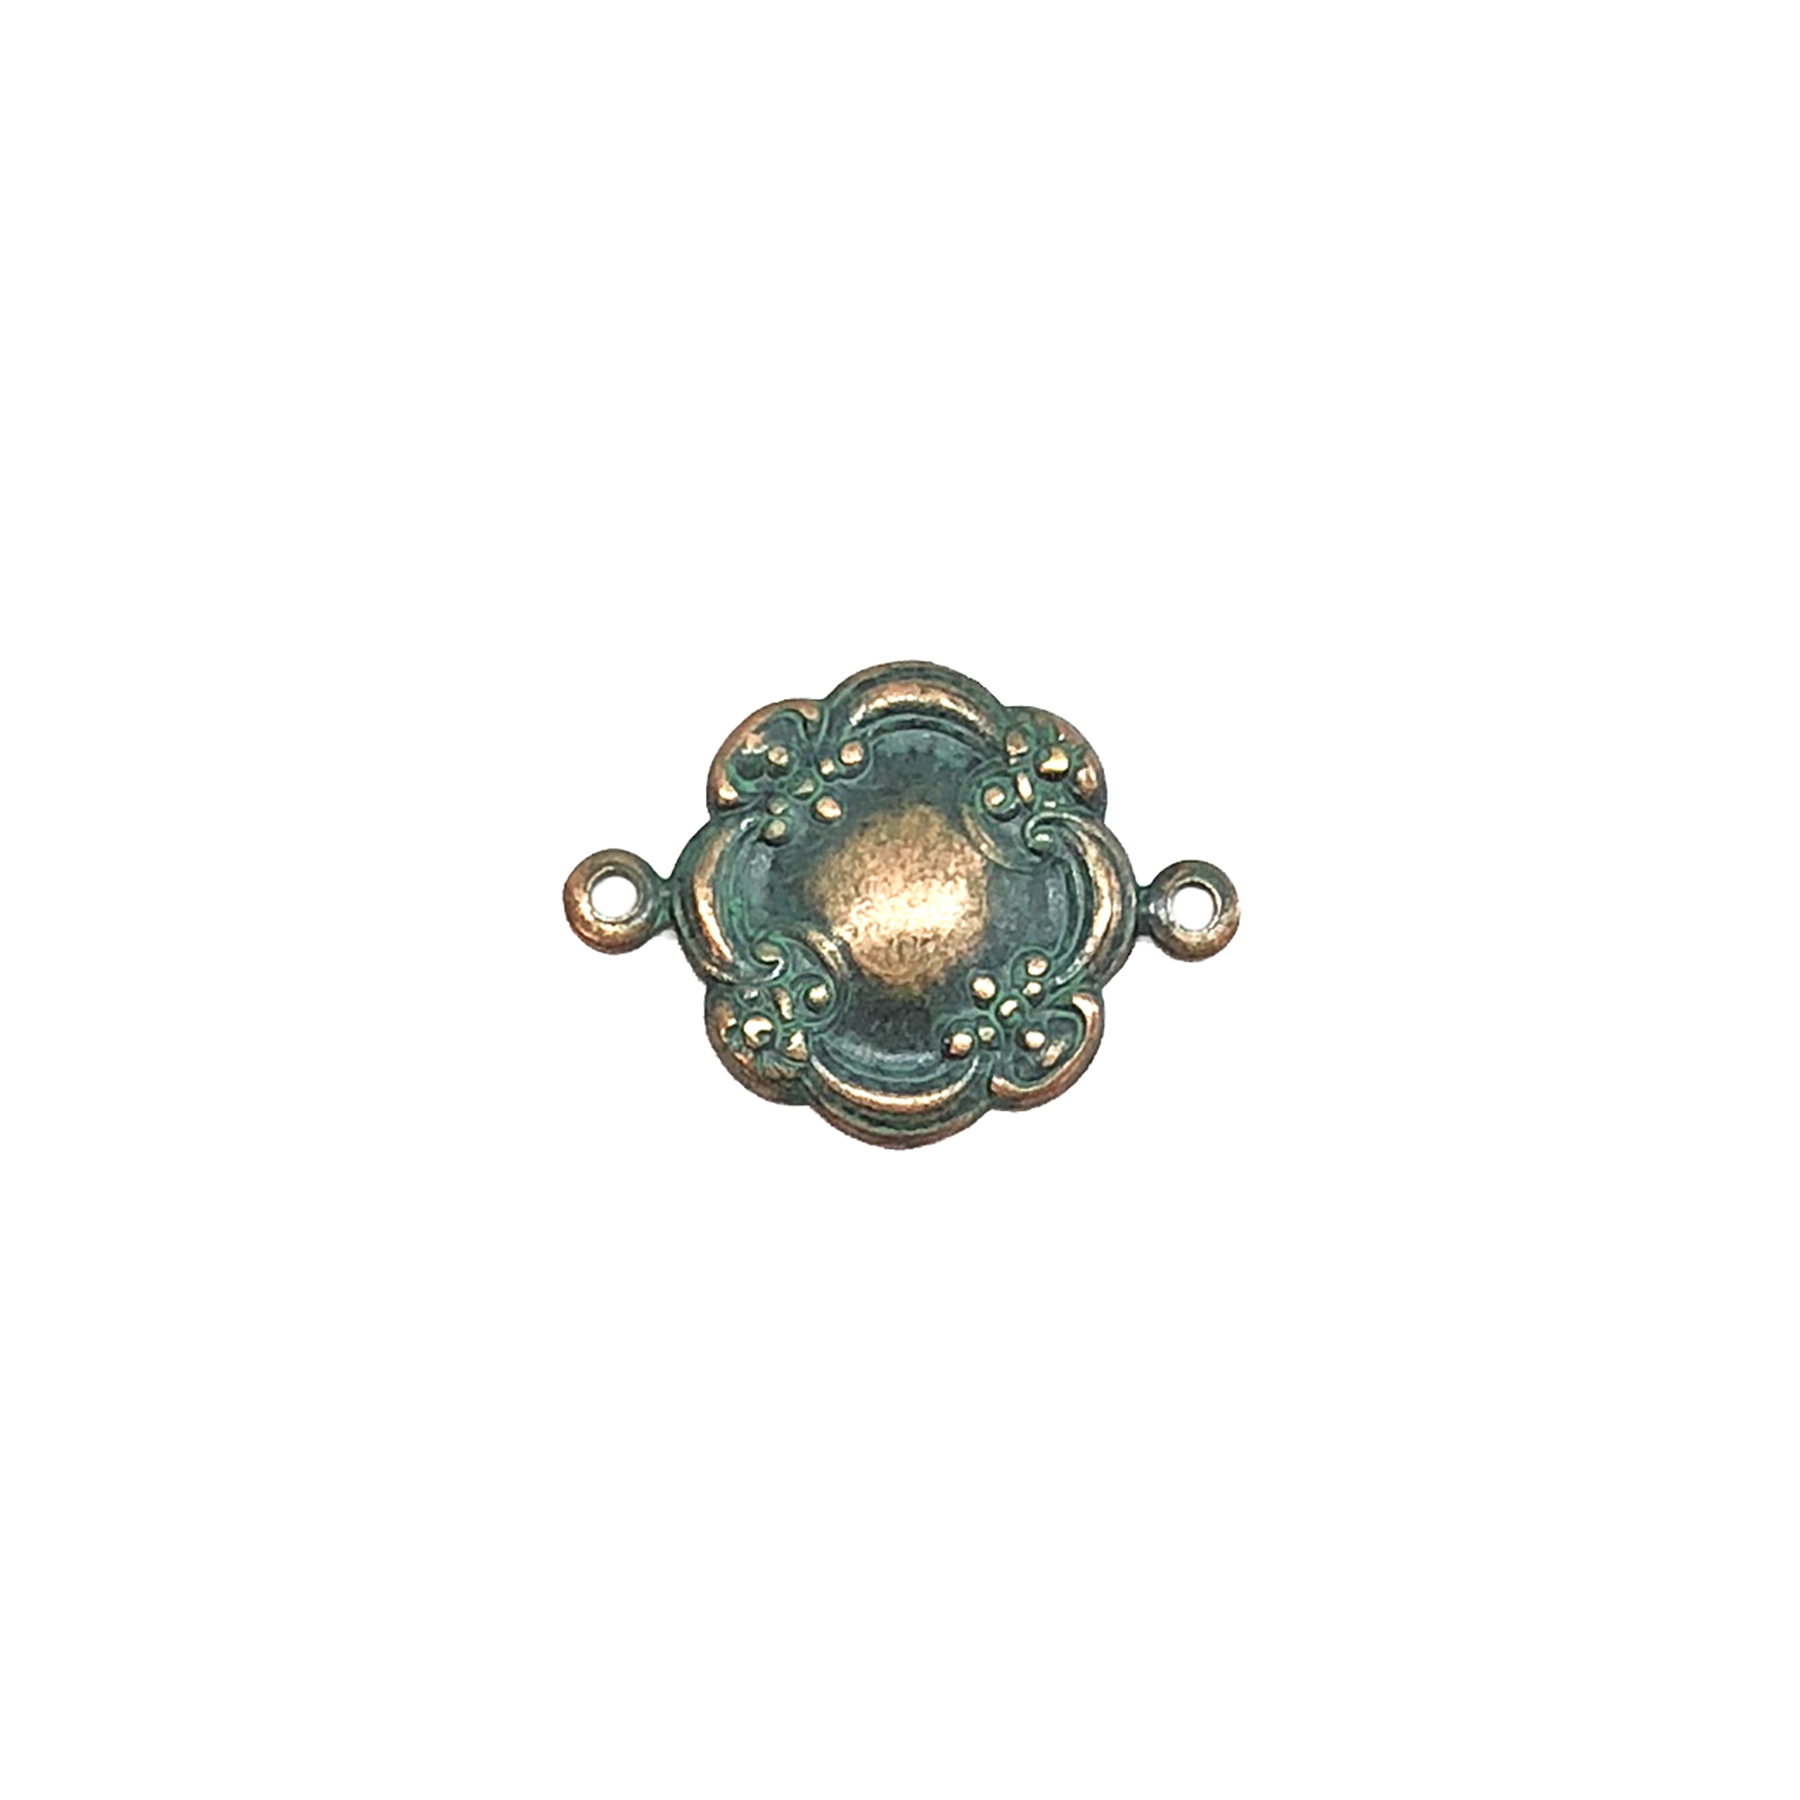 floral connector, aqua copper patina, connector, Victorian style, floral, US made, B'sue Boutiques, jewelry supplies, vintage supplies, jewelry making, jewelry connector, brass charms, floral charms, 14mm, brass stamping, floral style, 08671